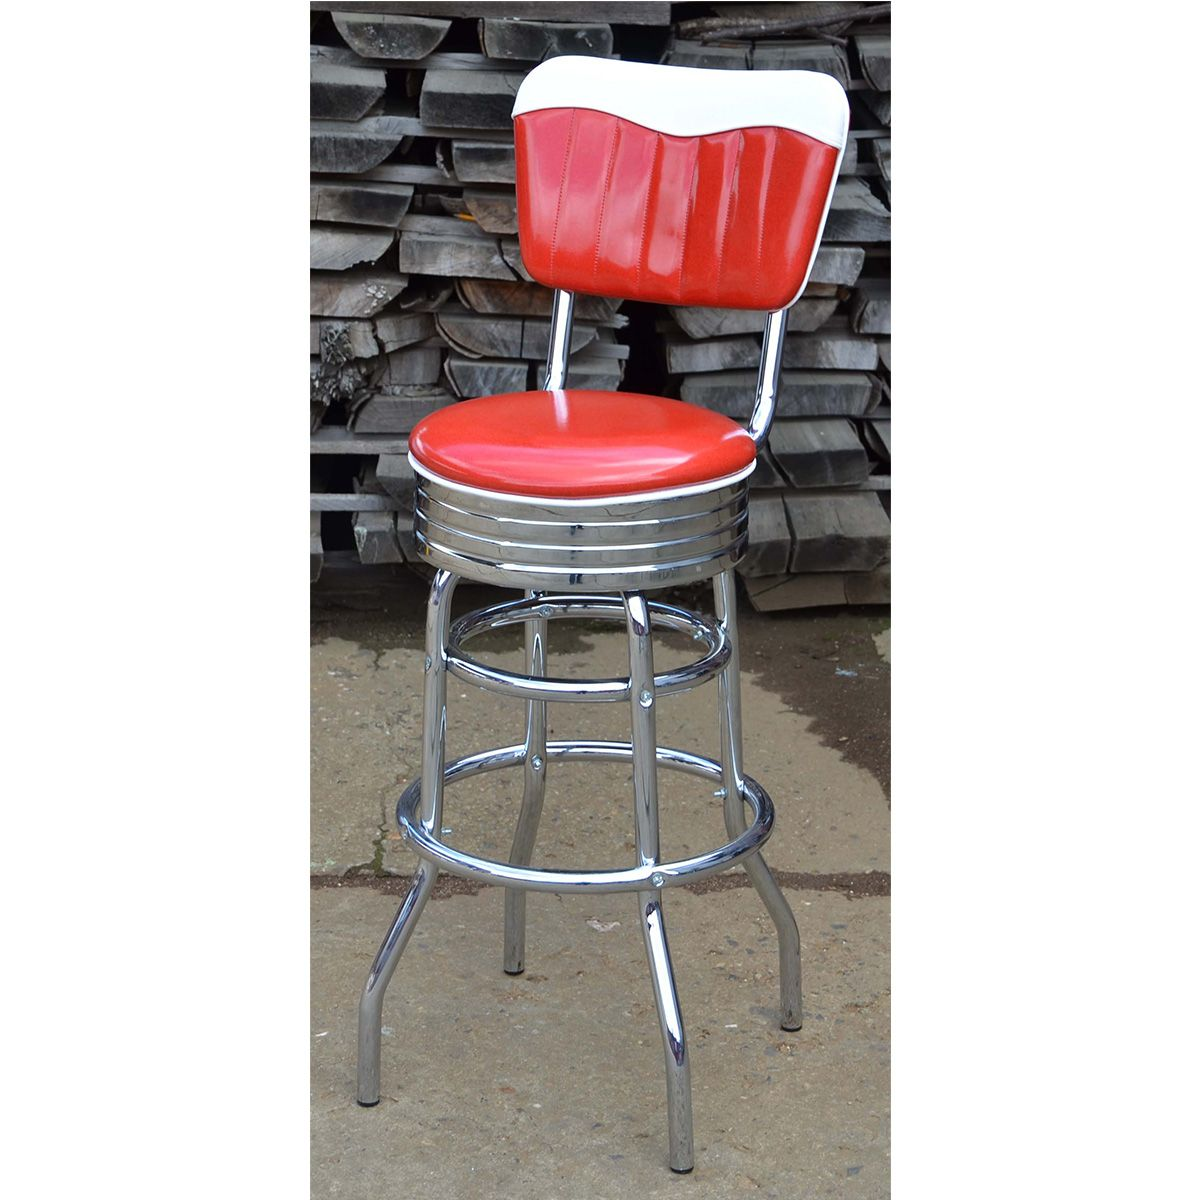 American Retro Bar Stool With Backrest Diner Restaurants